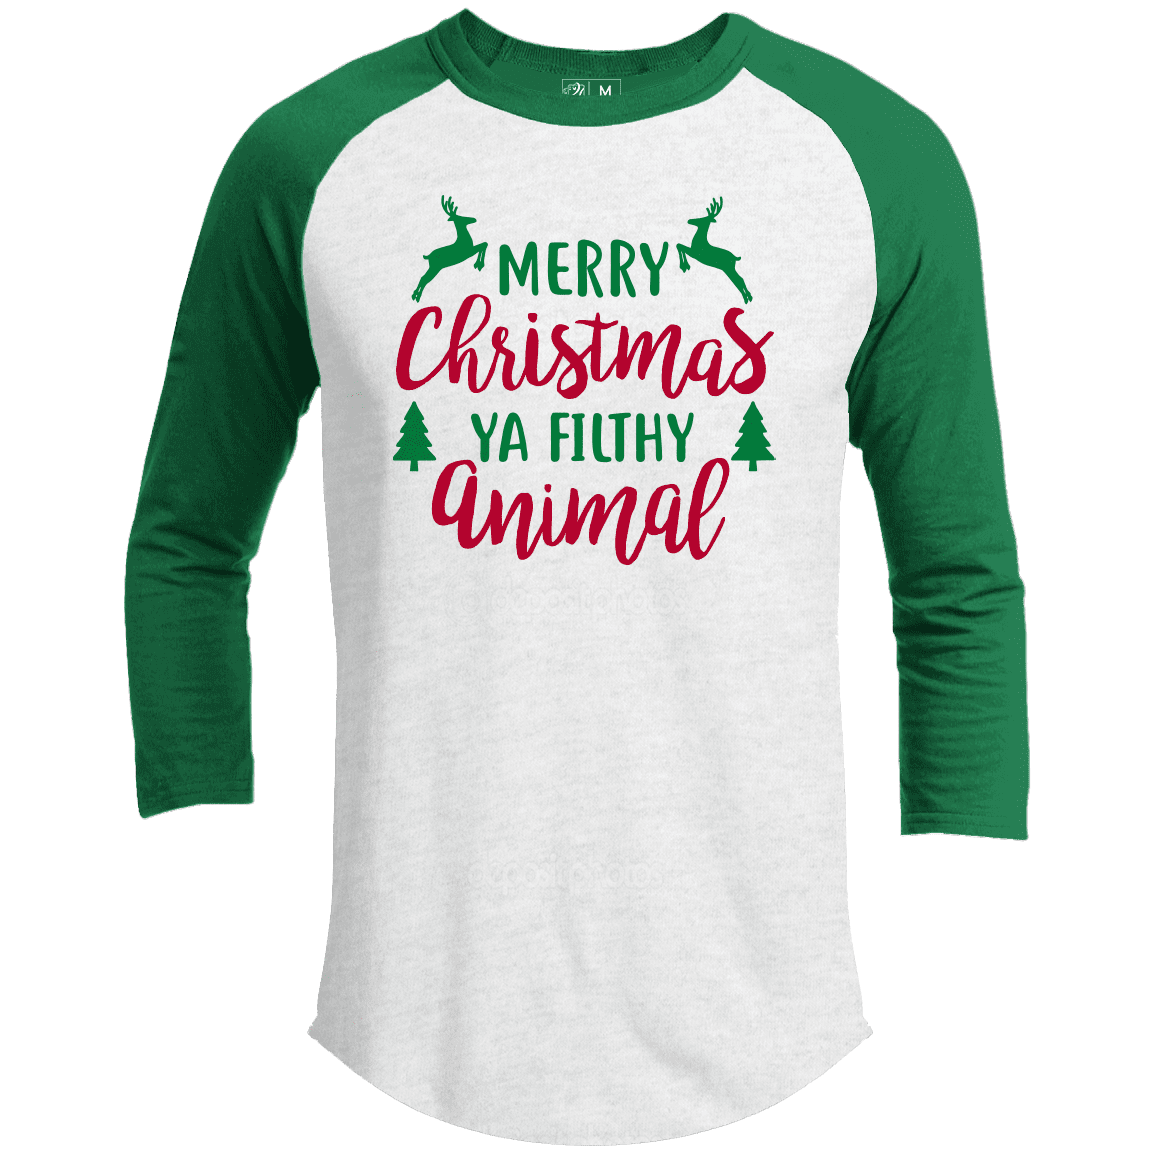 MERRY CHRISTMAS YA FILTHY ANIMAL Premium Christmas Raglan